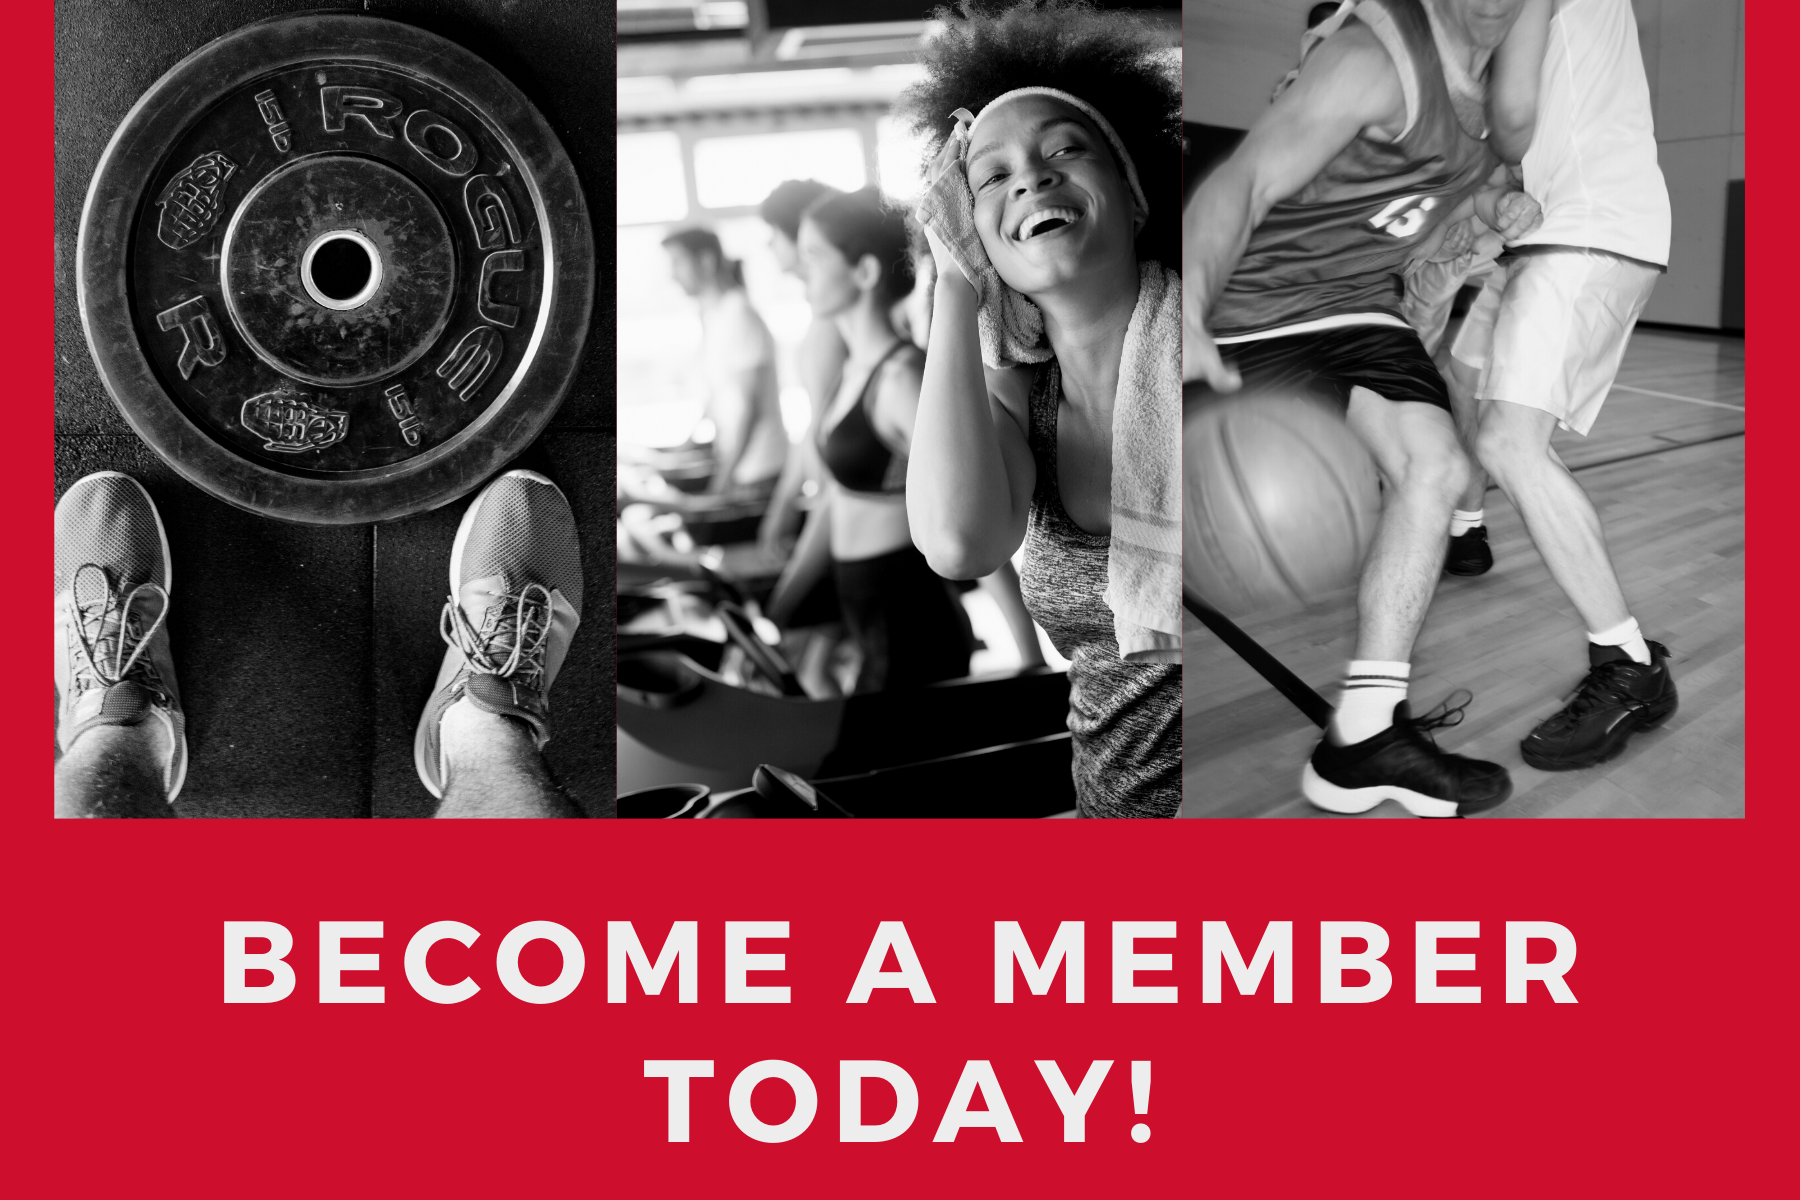 Glass Recreation Center Become a Member Today!